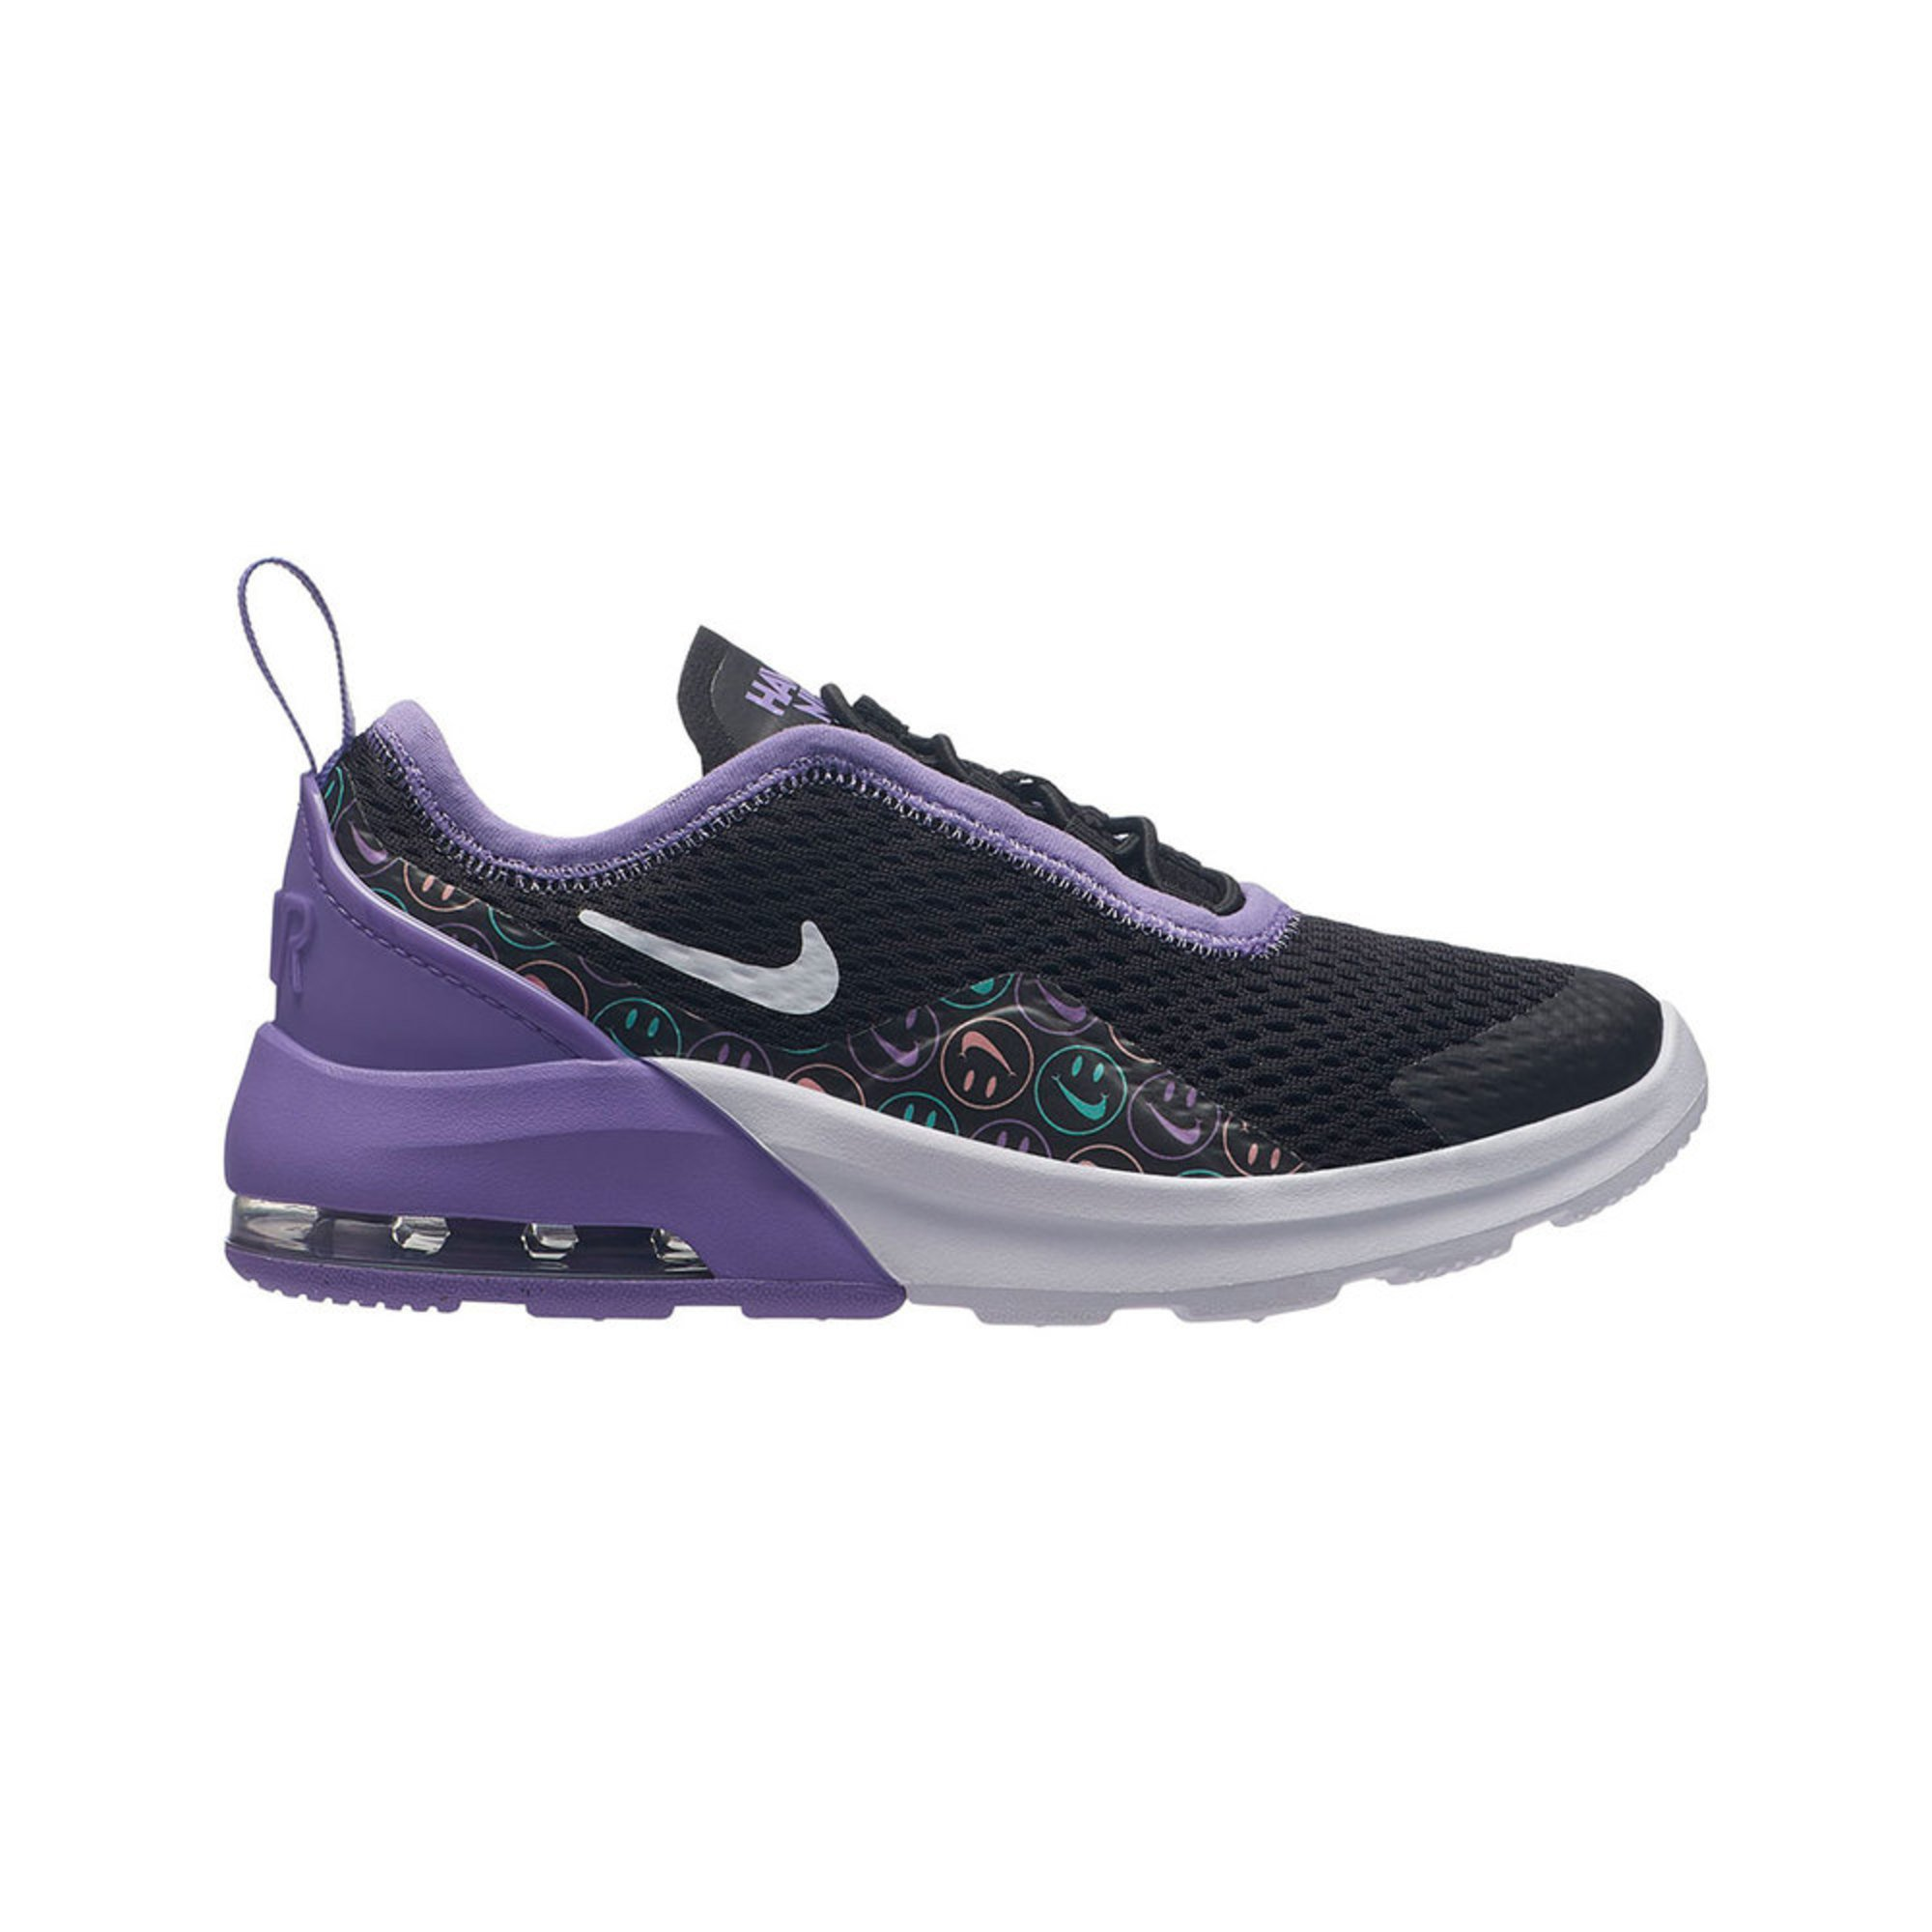 4cfeee44fd032 Nike Girls Air Max Motion 2 Running Shoe (youth) | Youth Shoes ...